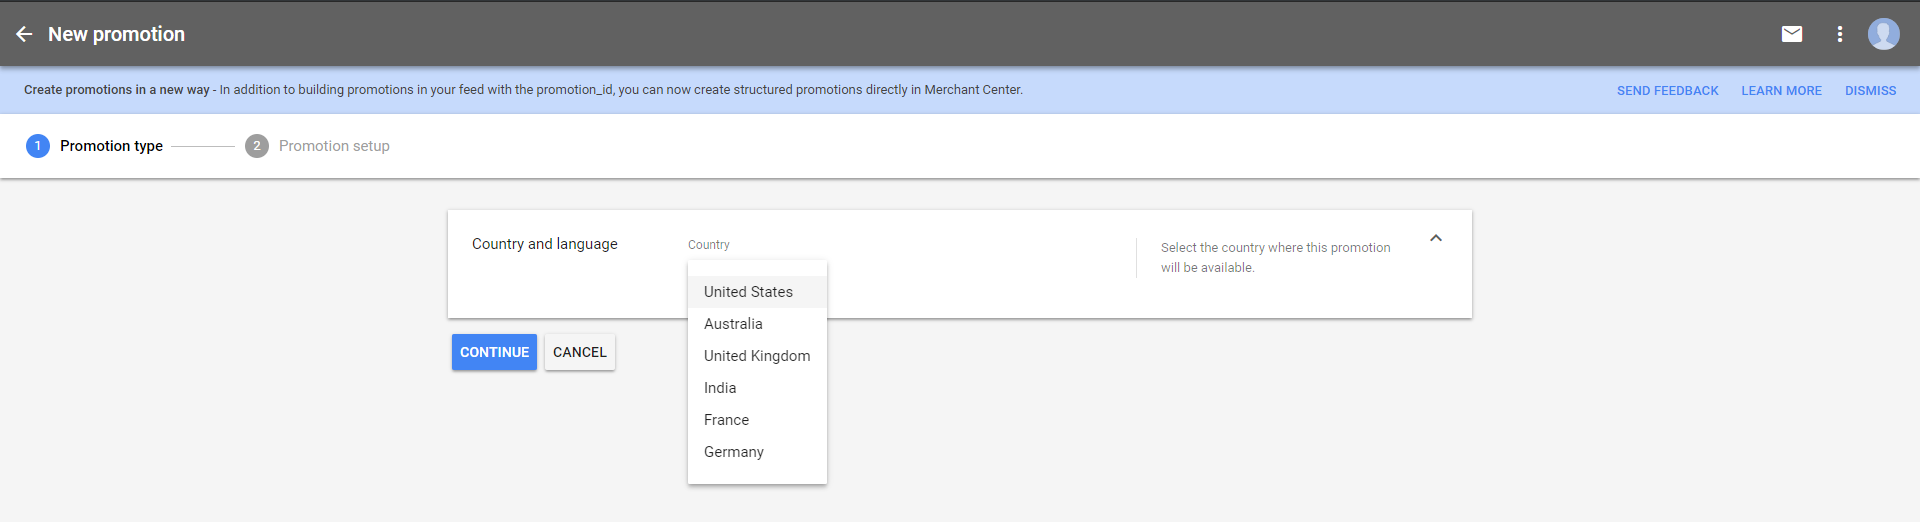 The first step of the Merchant Promotions setup wizard is to identify your country and language. Click image to enlarge.